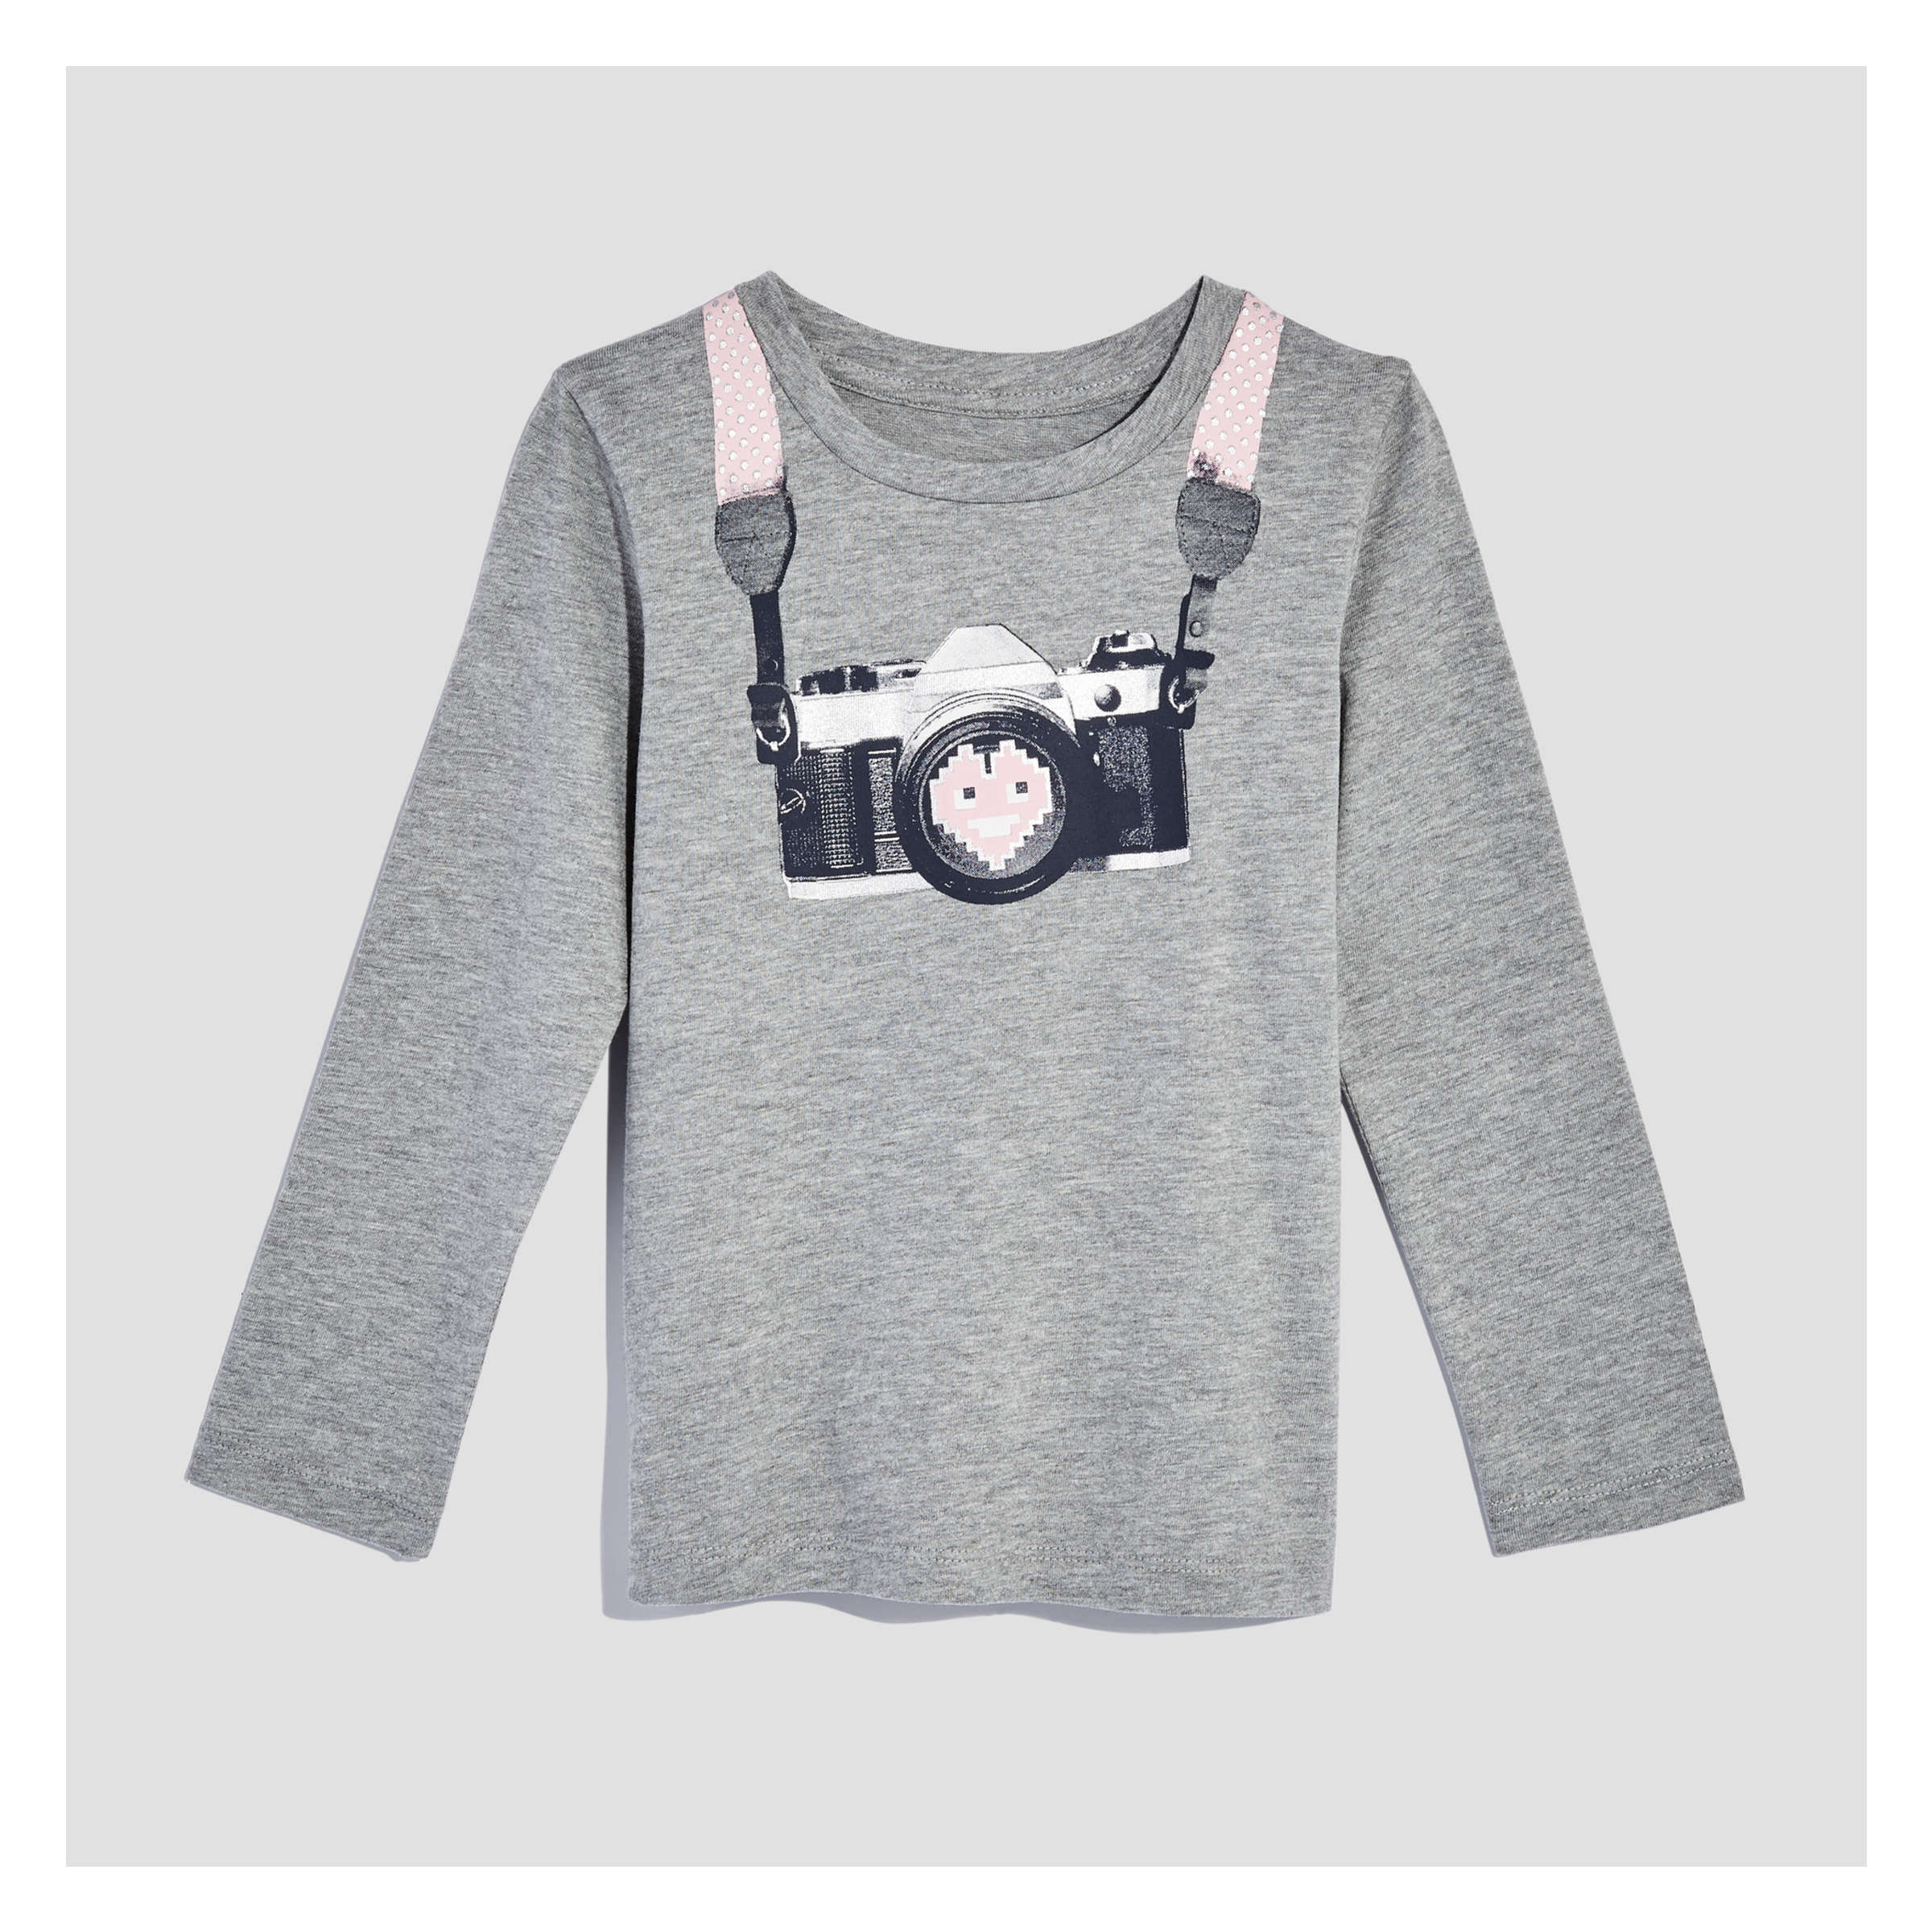 d417bea830 Joe Fresh Toddler Girls' Crew Neck Tee